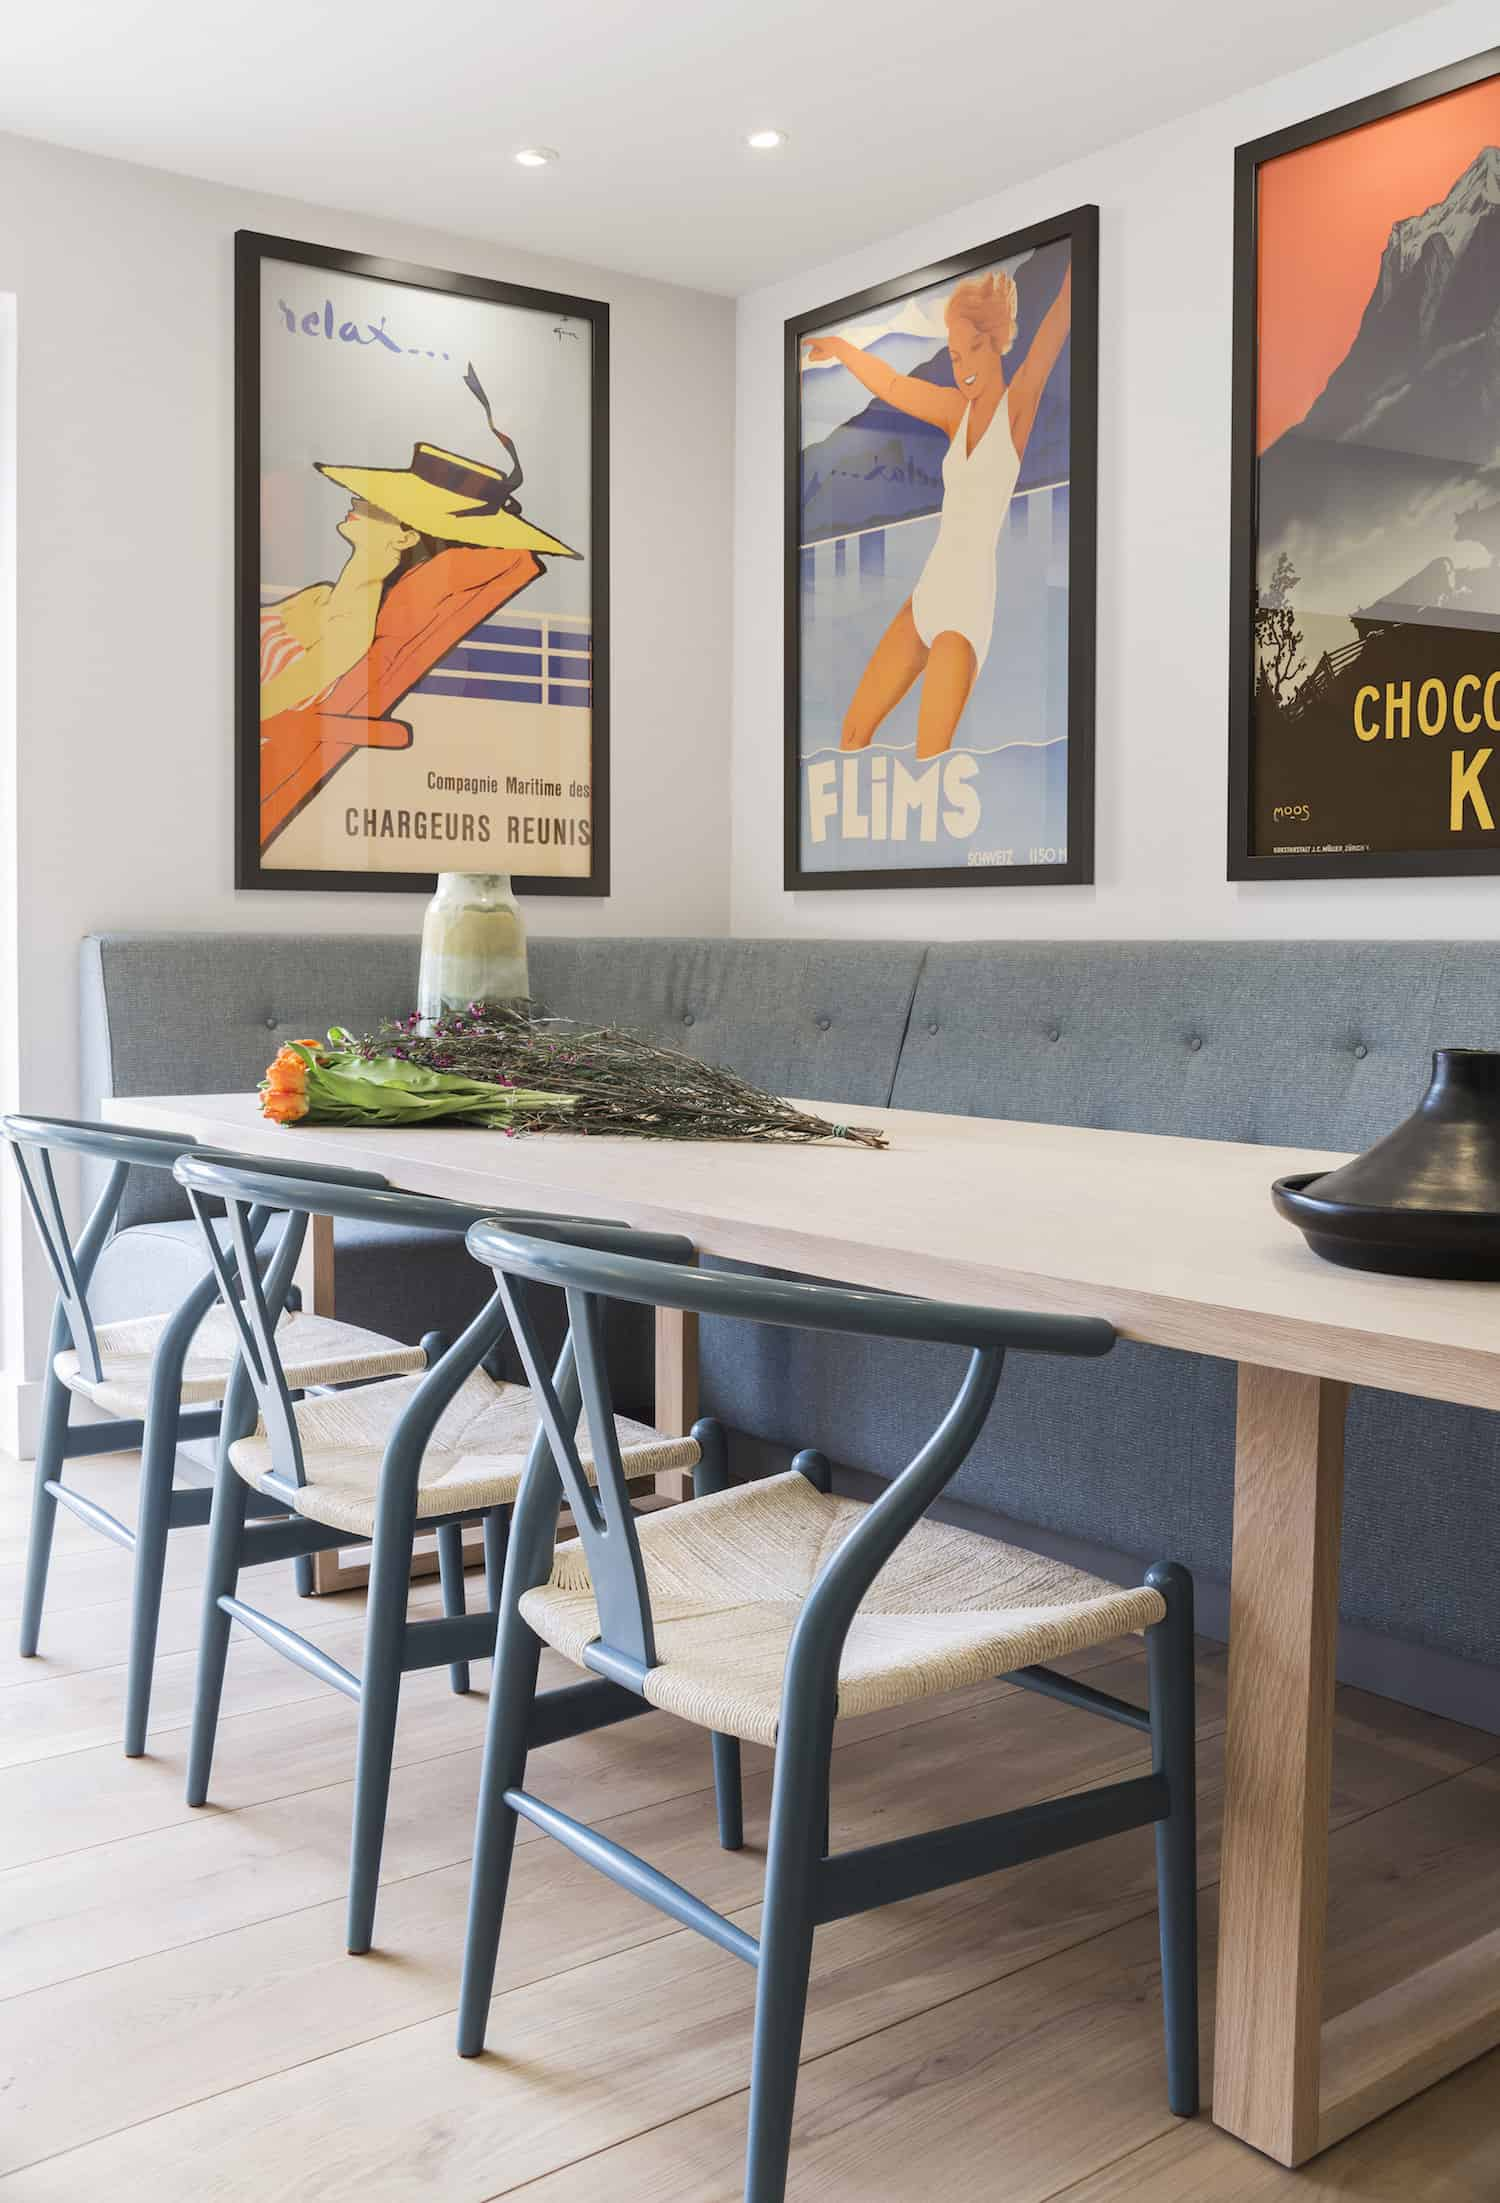 The long bench seating in the kitchen area is one of my favorite features. That's a large cushioned booth with long table and three chairs on the outside. The entire kitchen table area can easily accommodate 8 people.